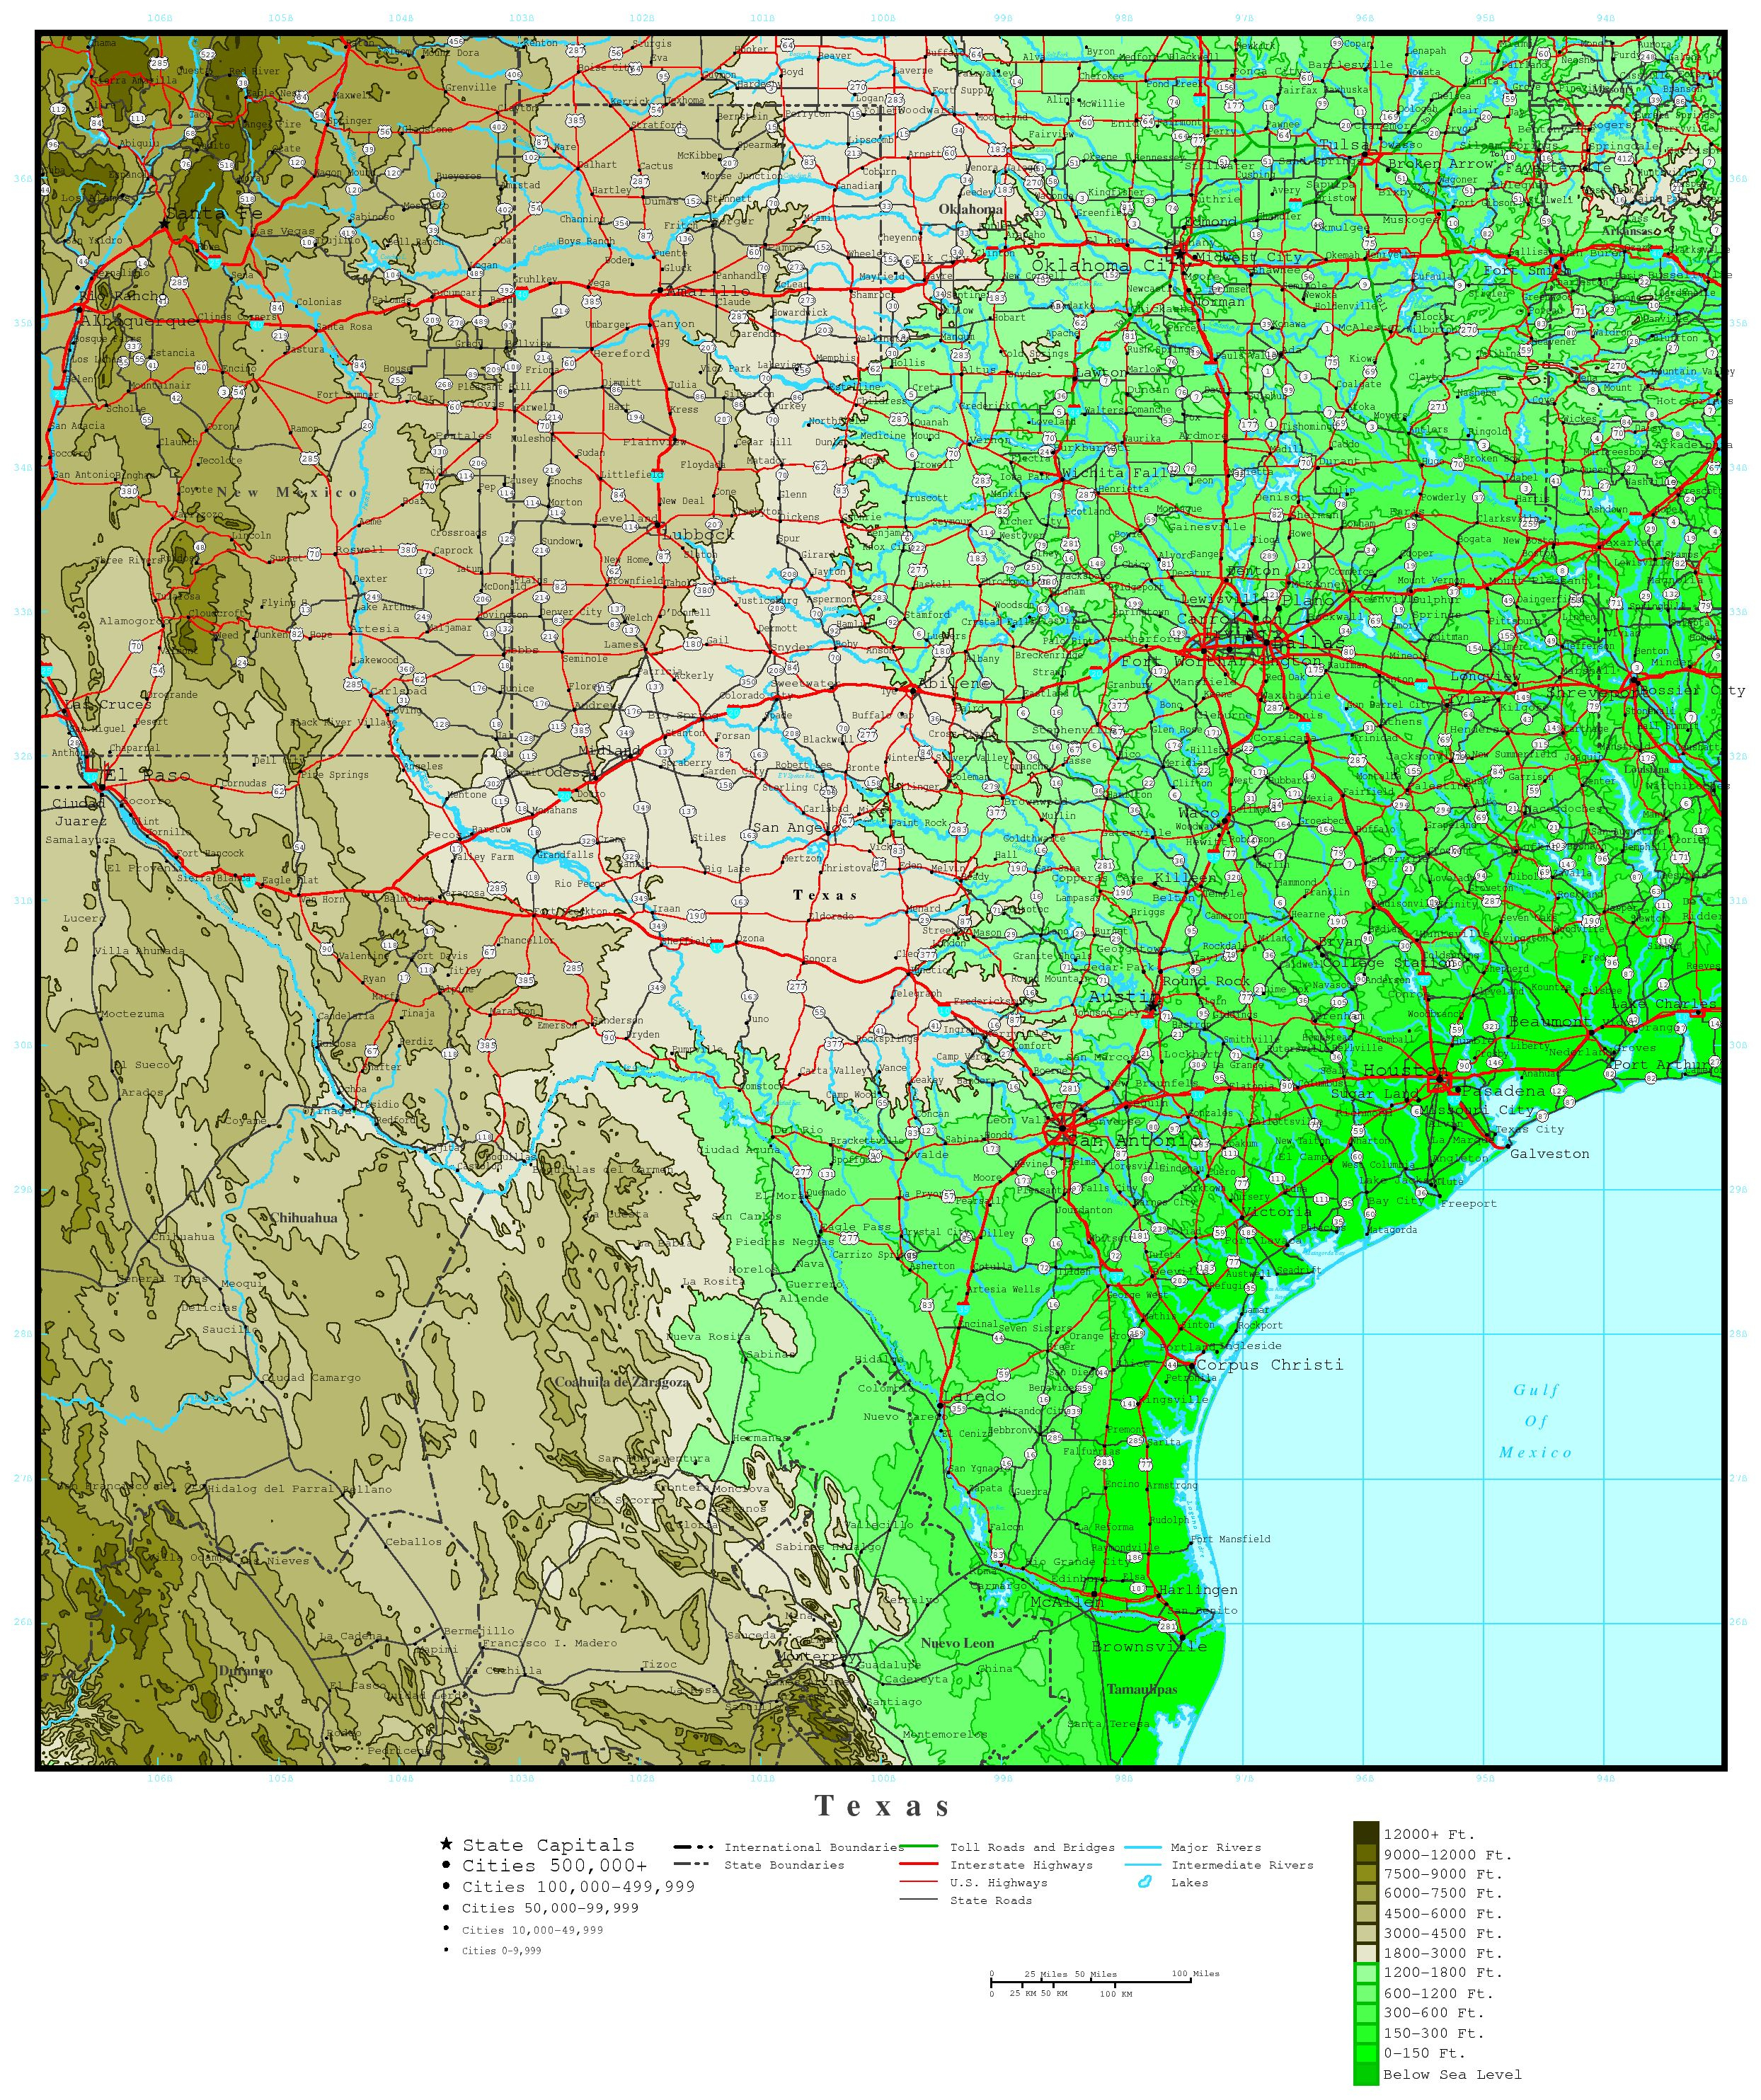 Texas Elevation Map - Topographic Map Of Fort Bend County Texas